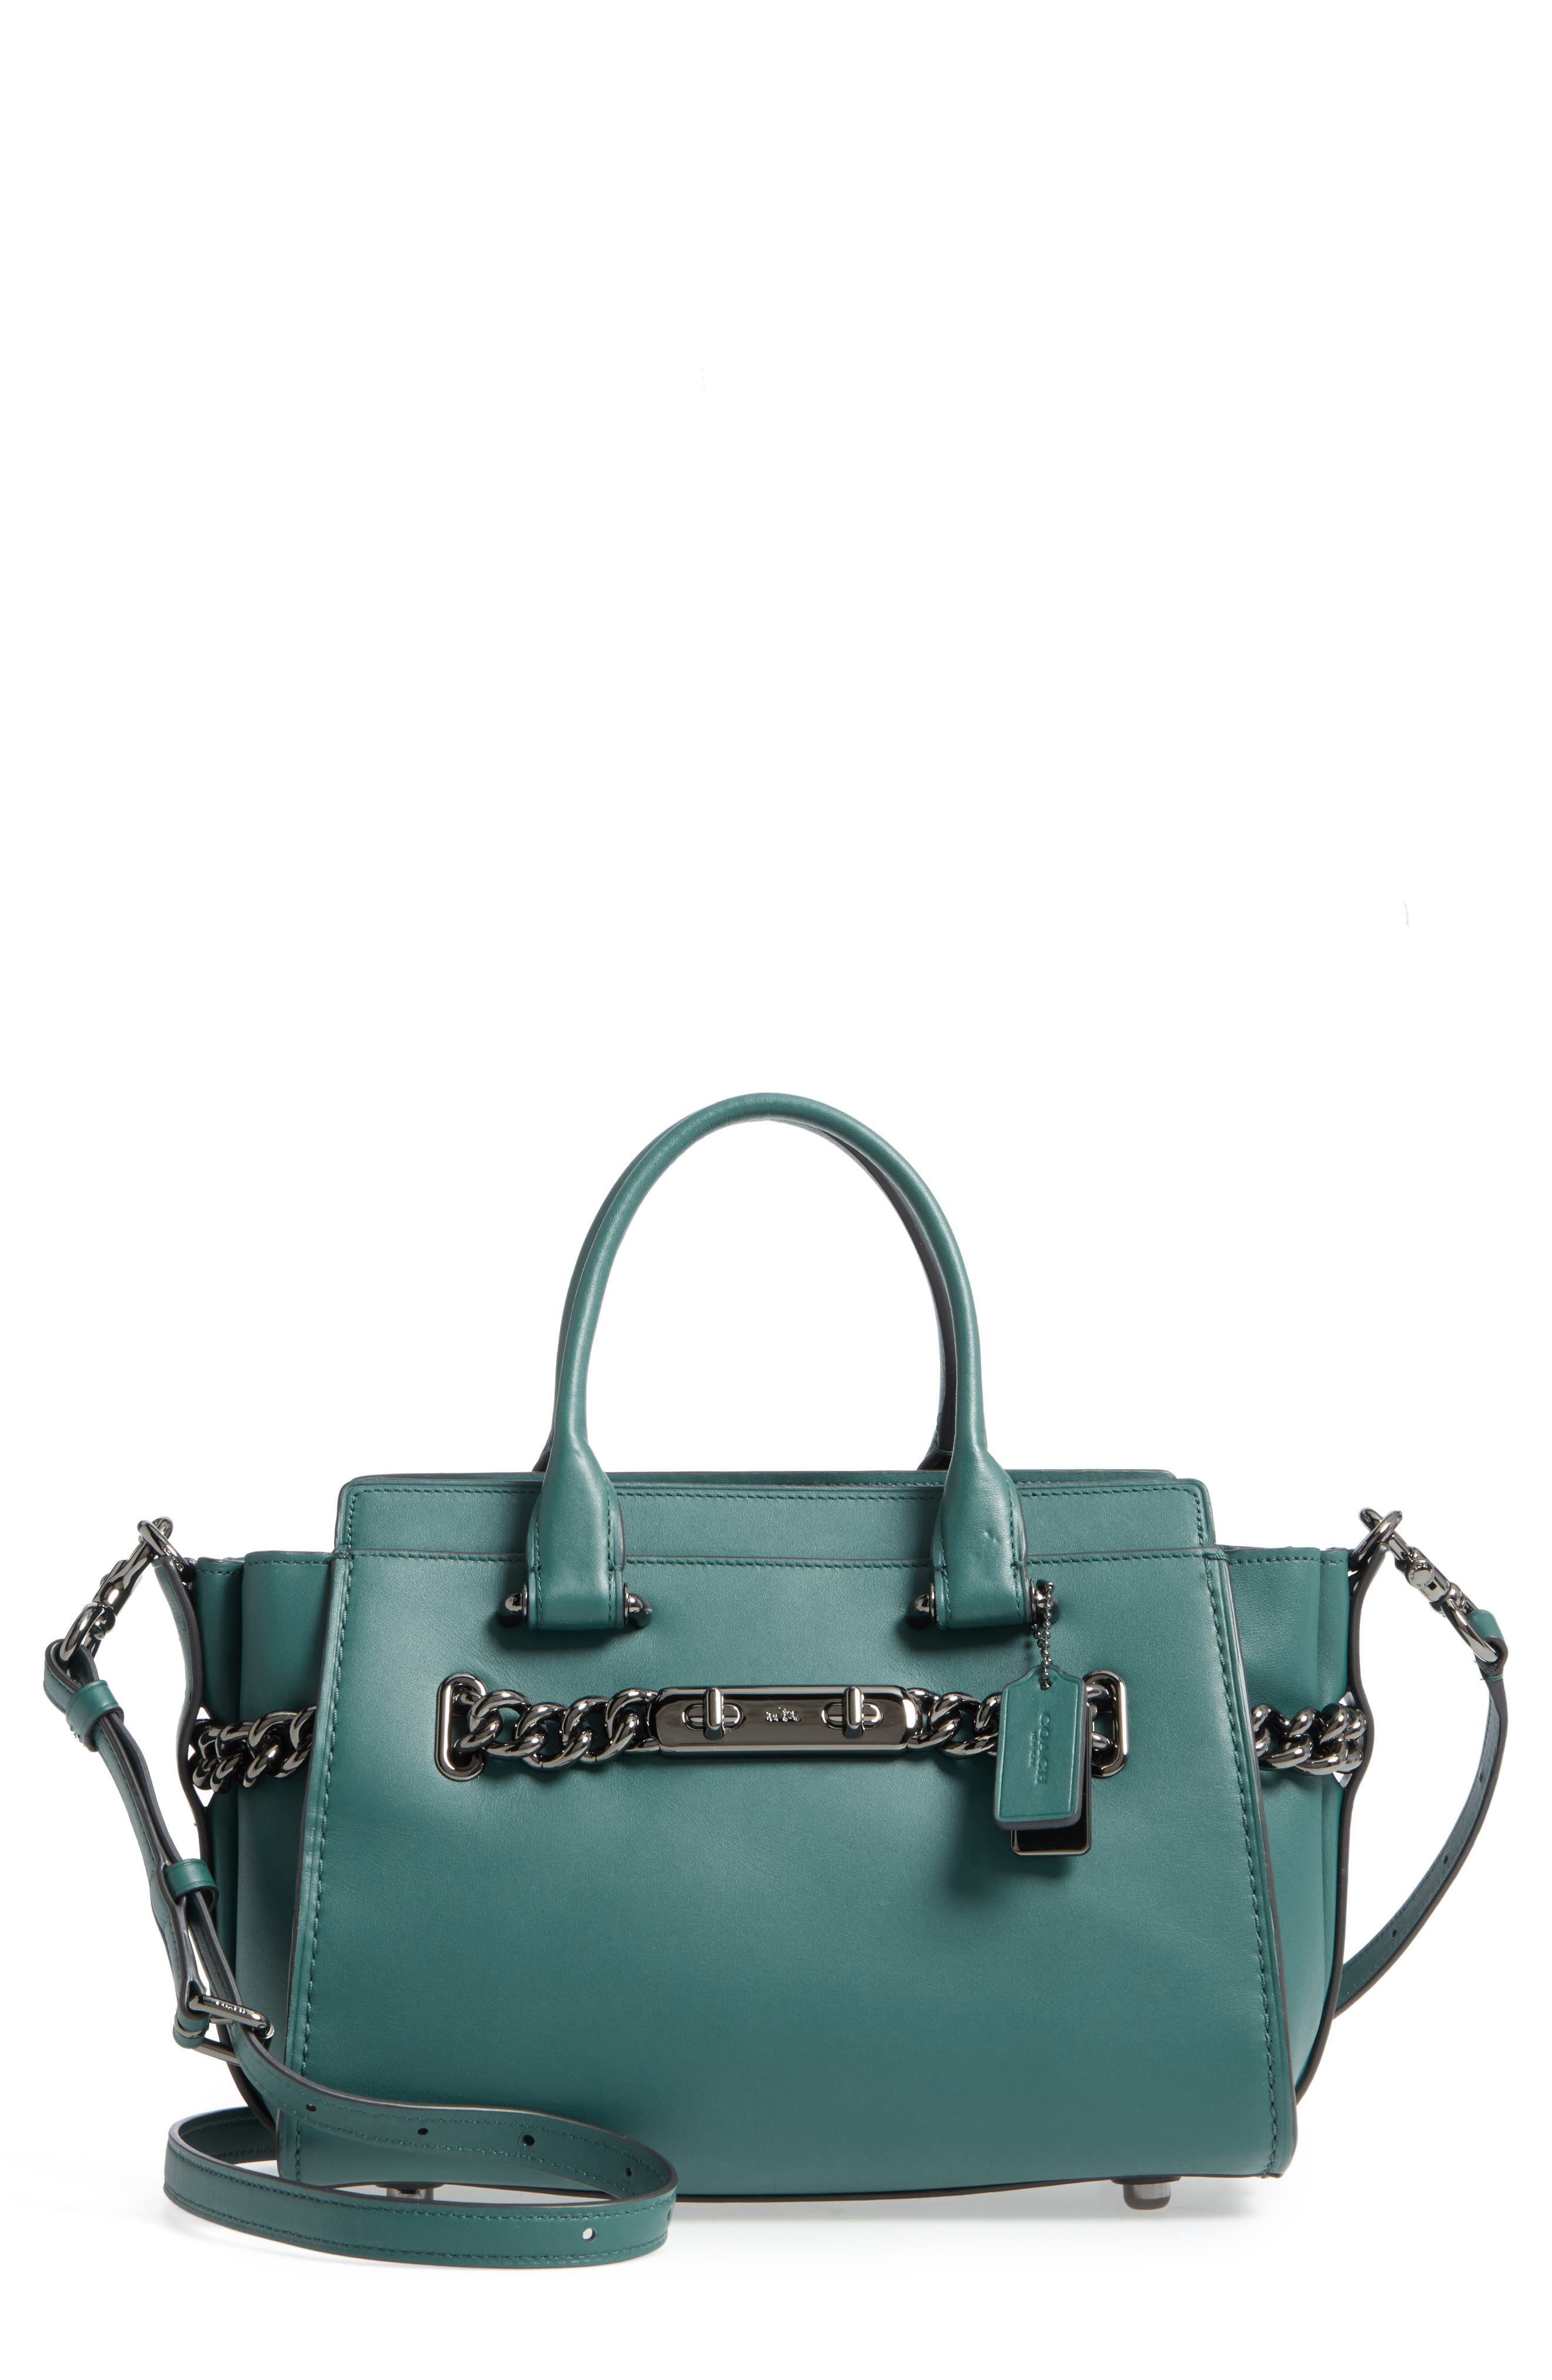 COACH ID Bracelet Swagger 27 Calfskin Leather Satchel